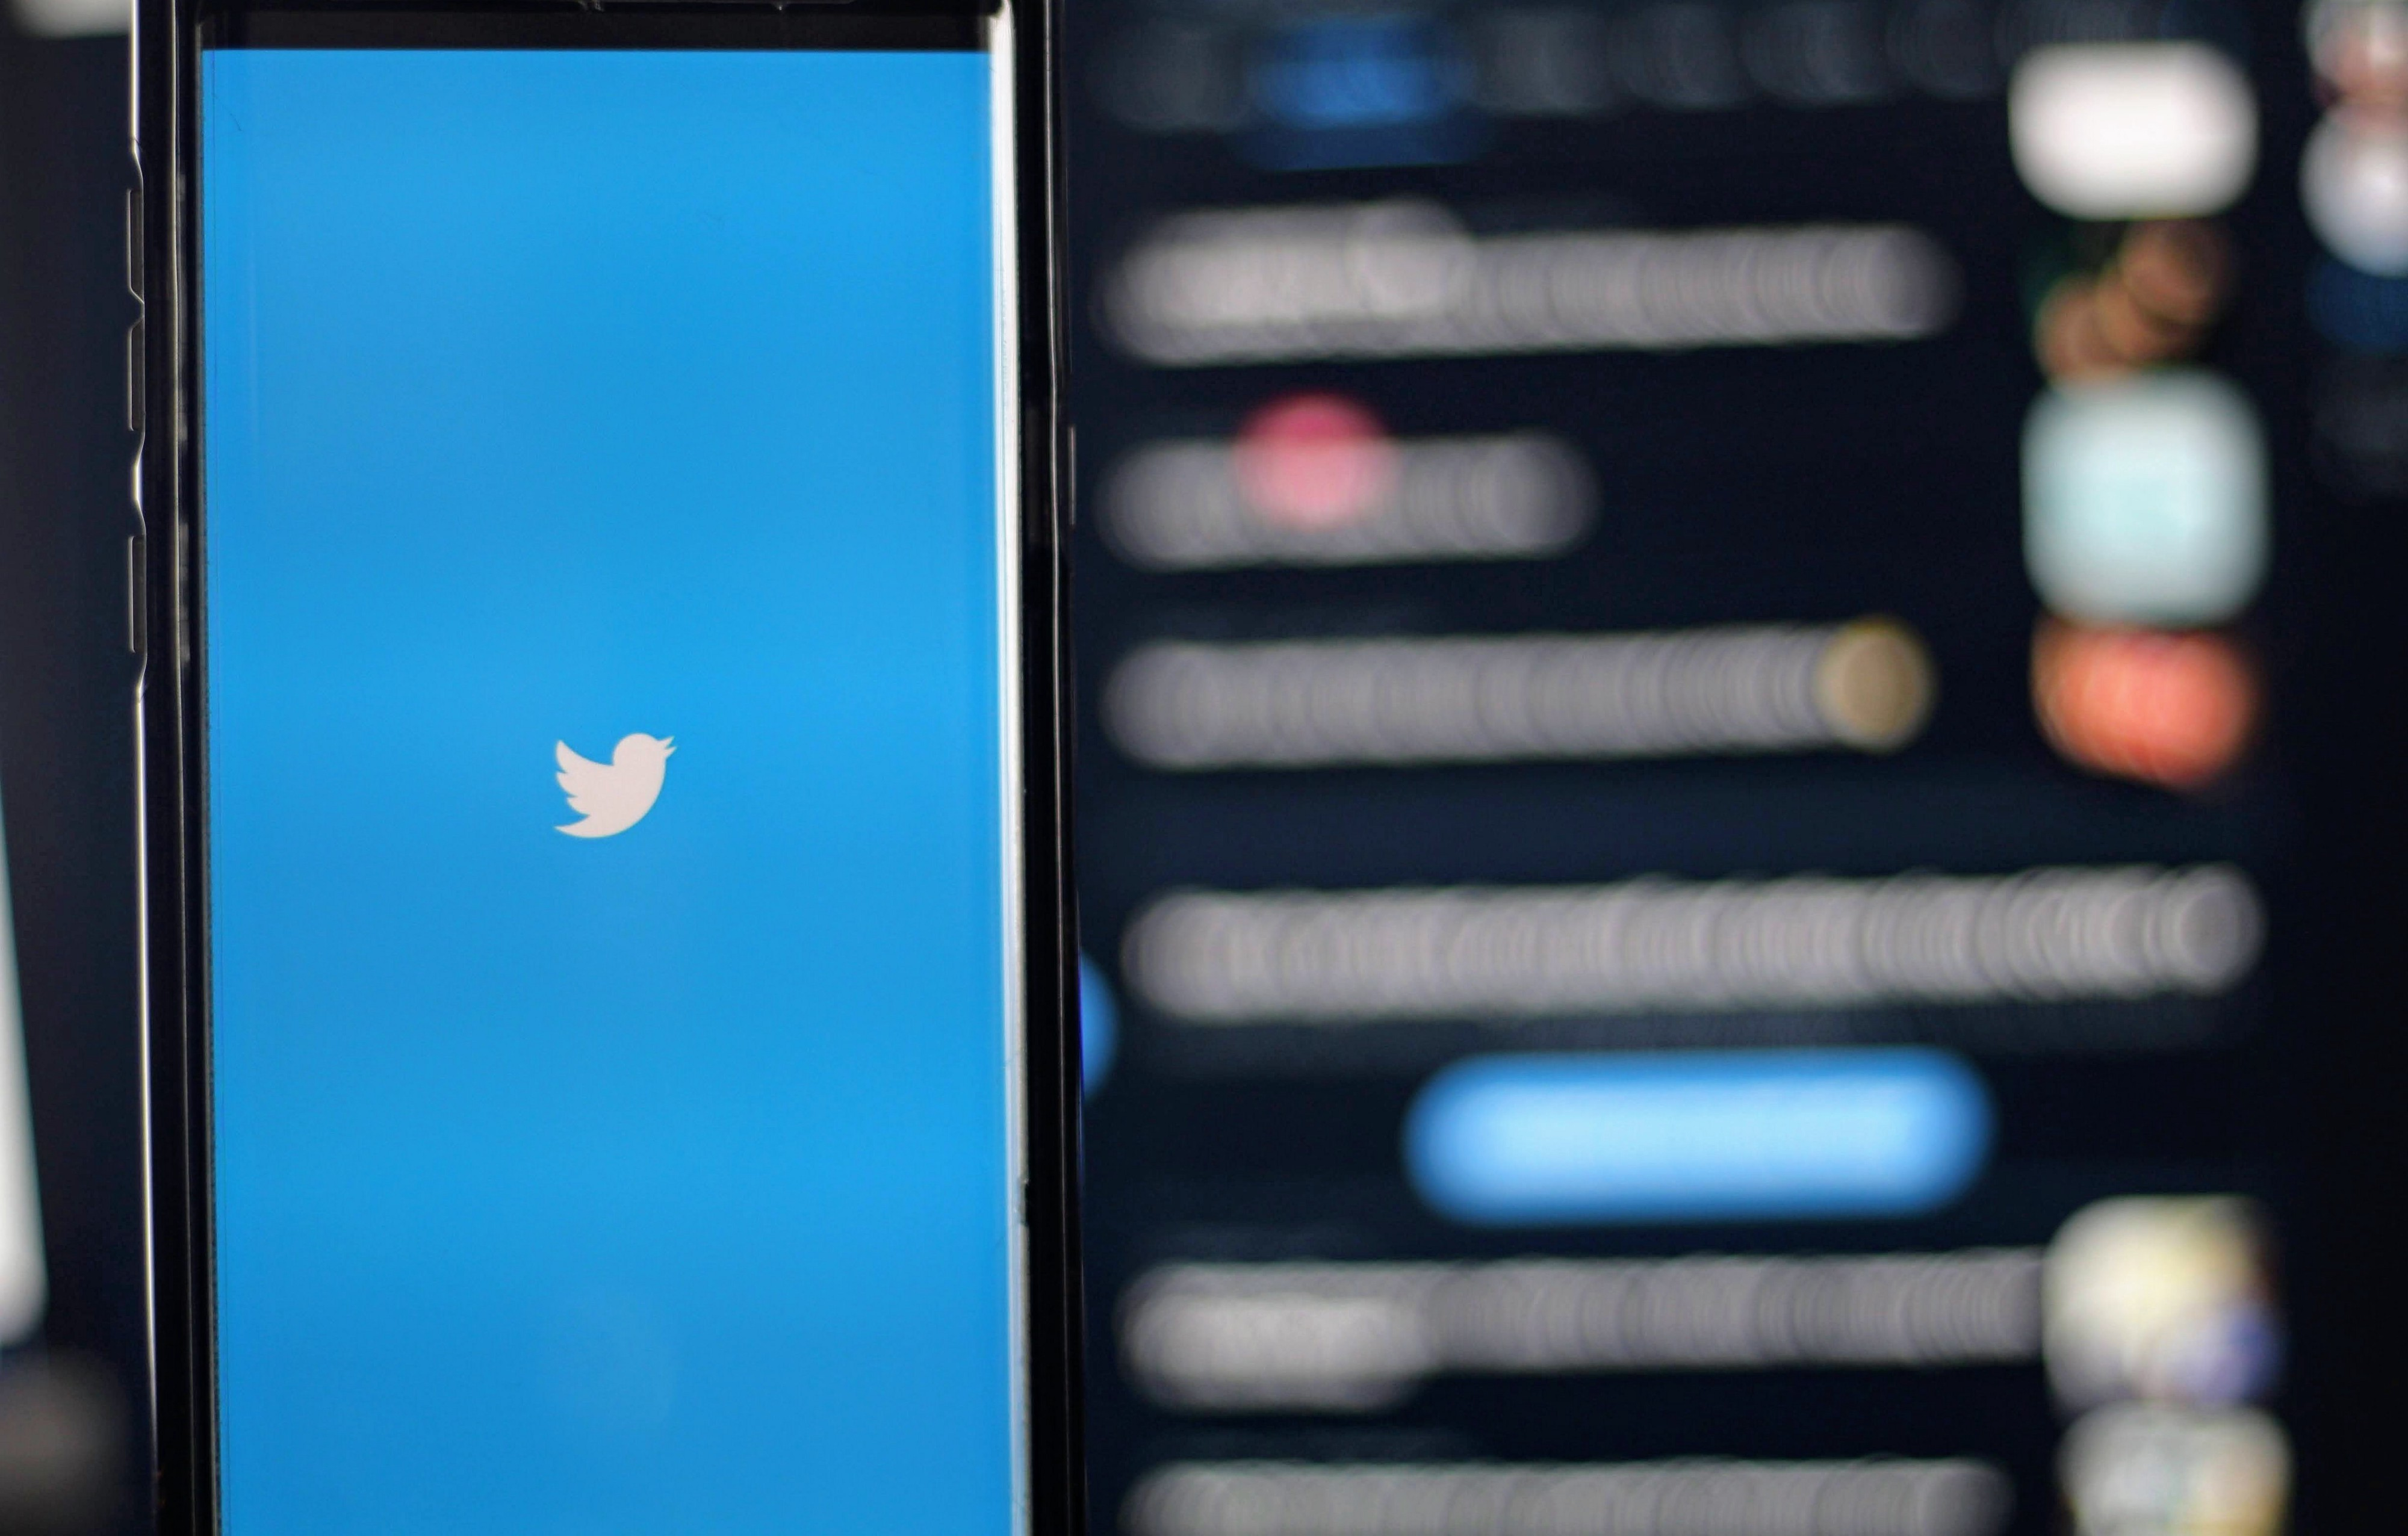 A mobile phone shows the Twitter app with a blurred screen behind it with various posts.